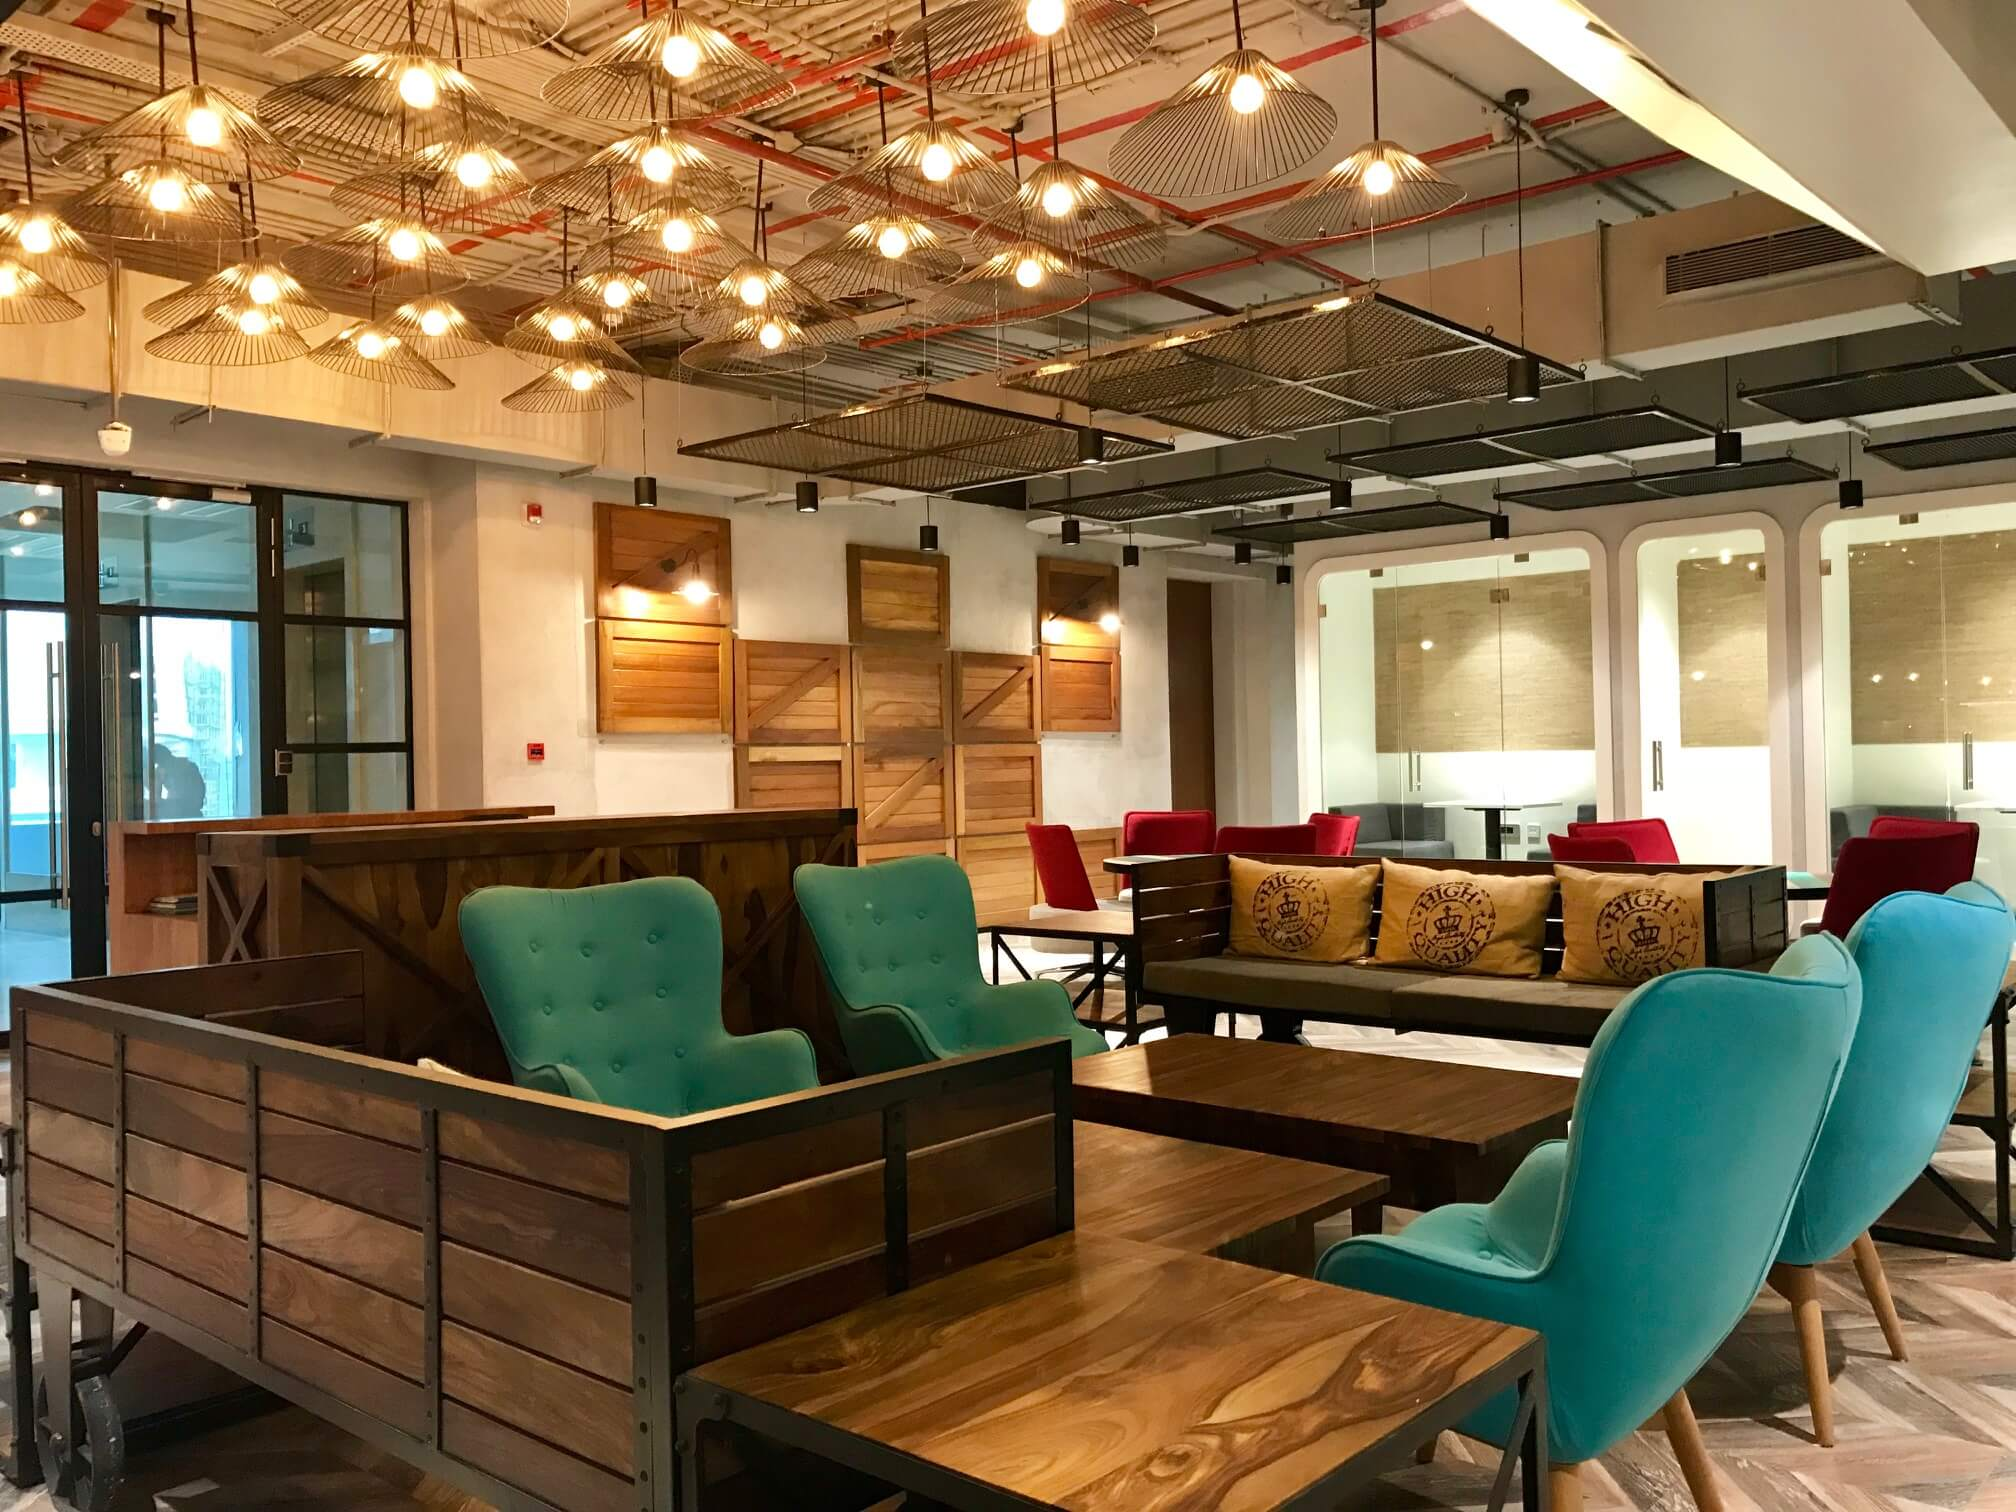 Awfis Coworking Space in India